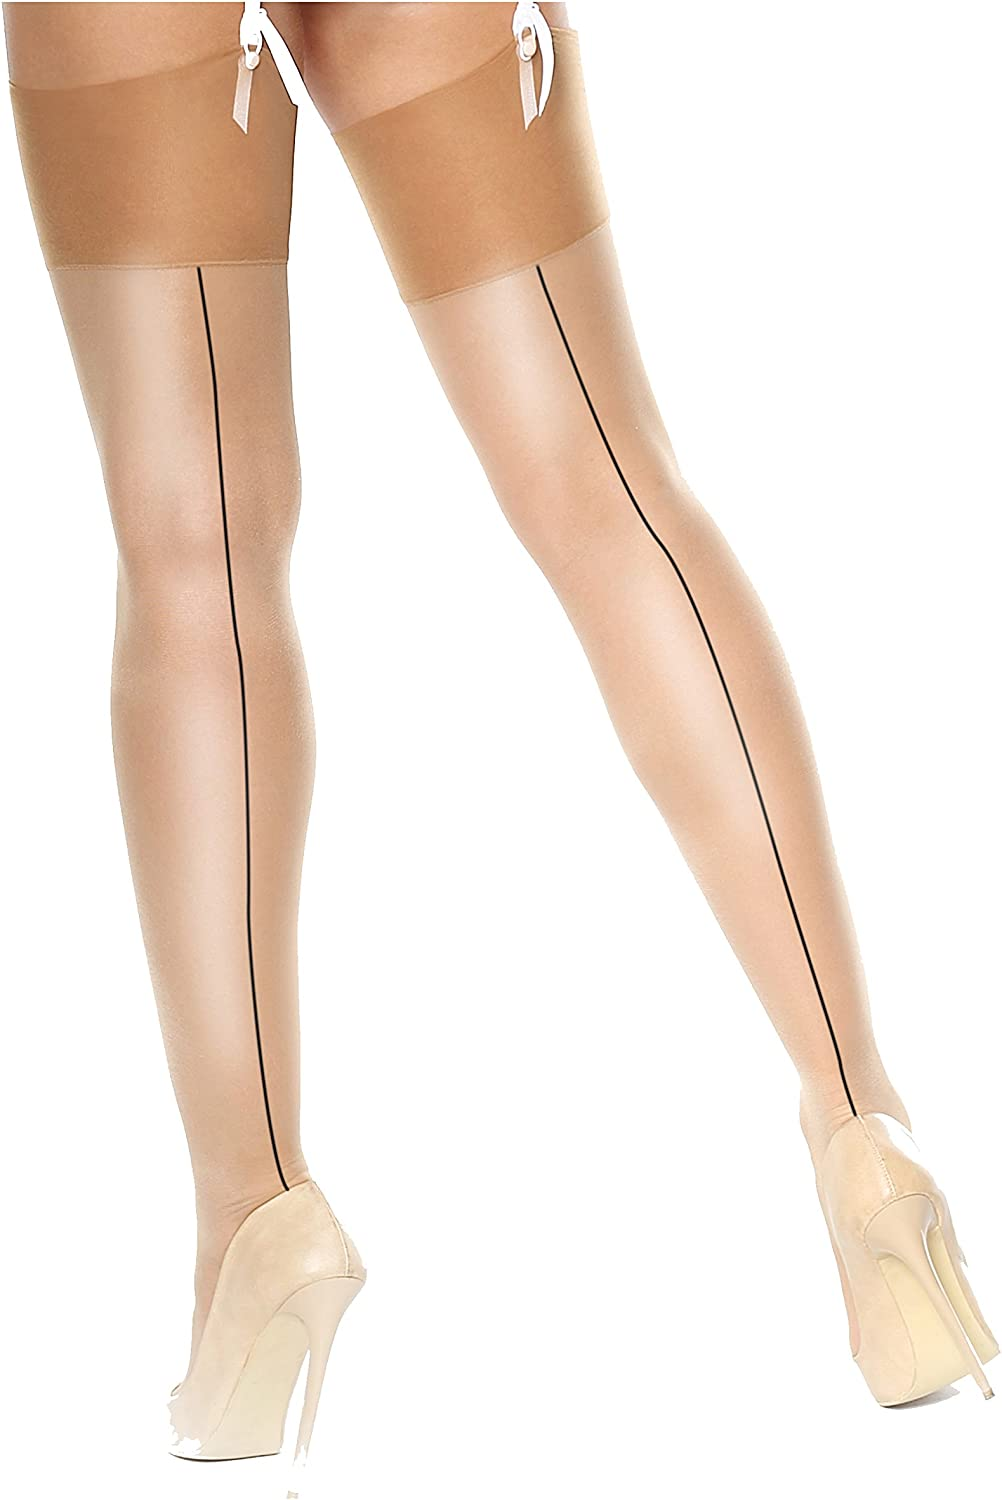 Miss store O Silky Stockings Seamed Branded goods